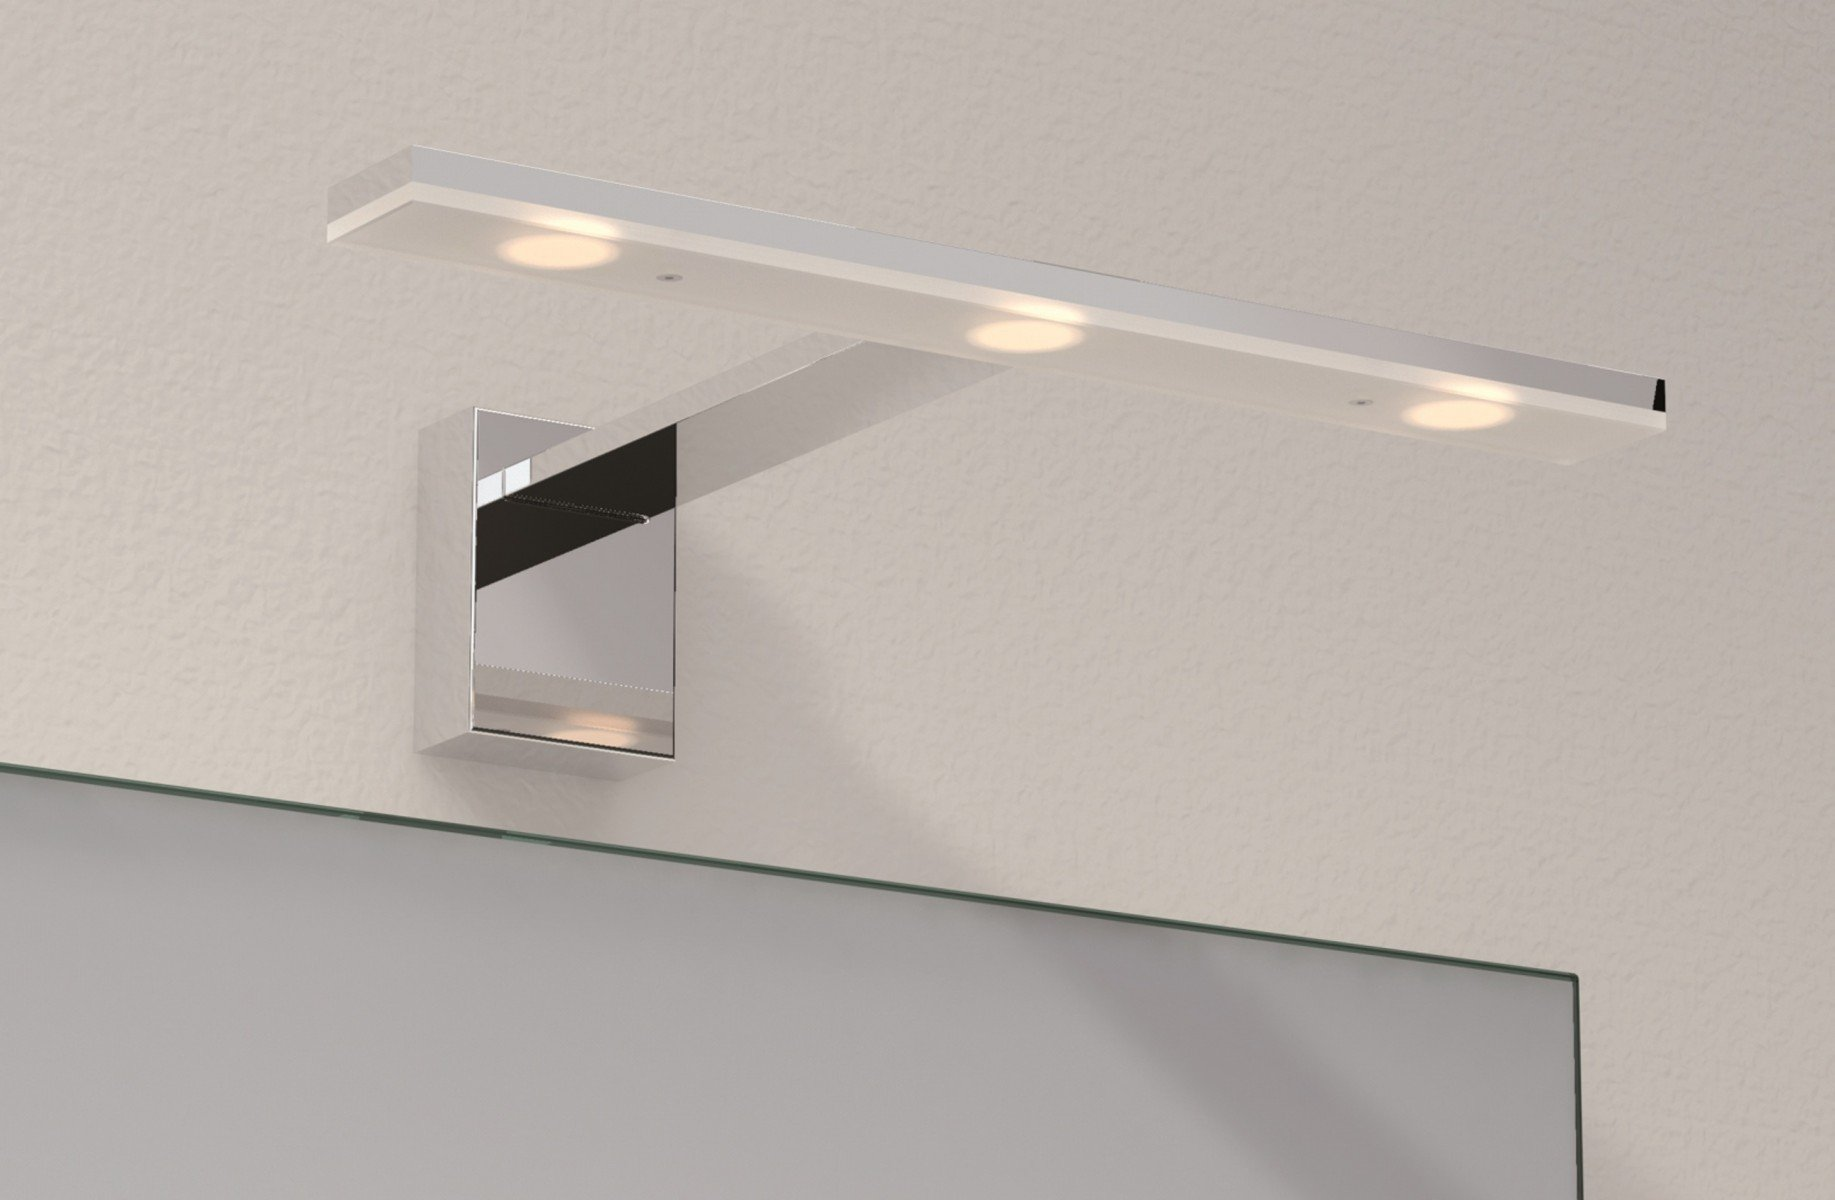 Aplique Baño Exo Lighting Tiel Aplique De Pared Baño Cromo Led 3x3w Apliques De Pared LÁmparas Exo Lighting